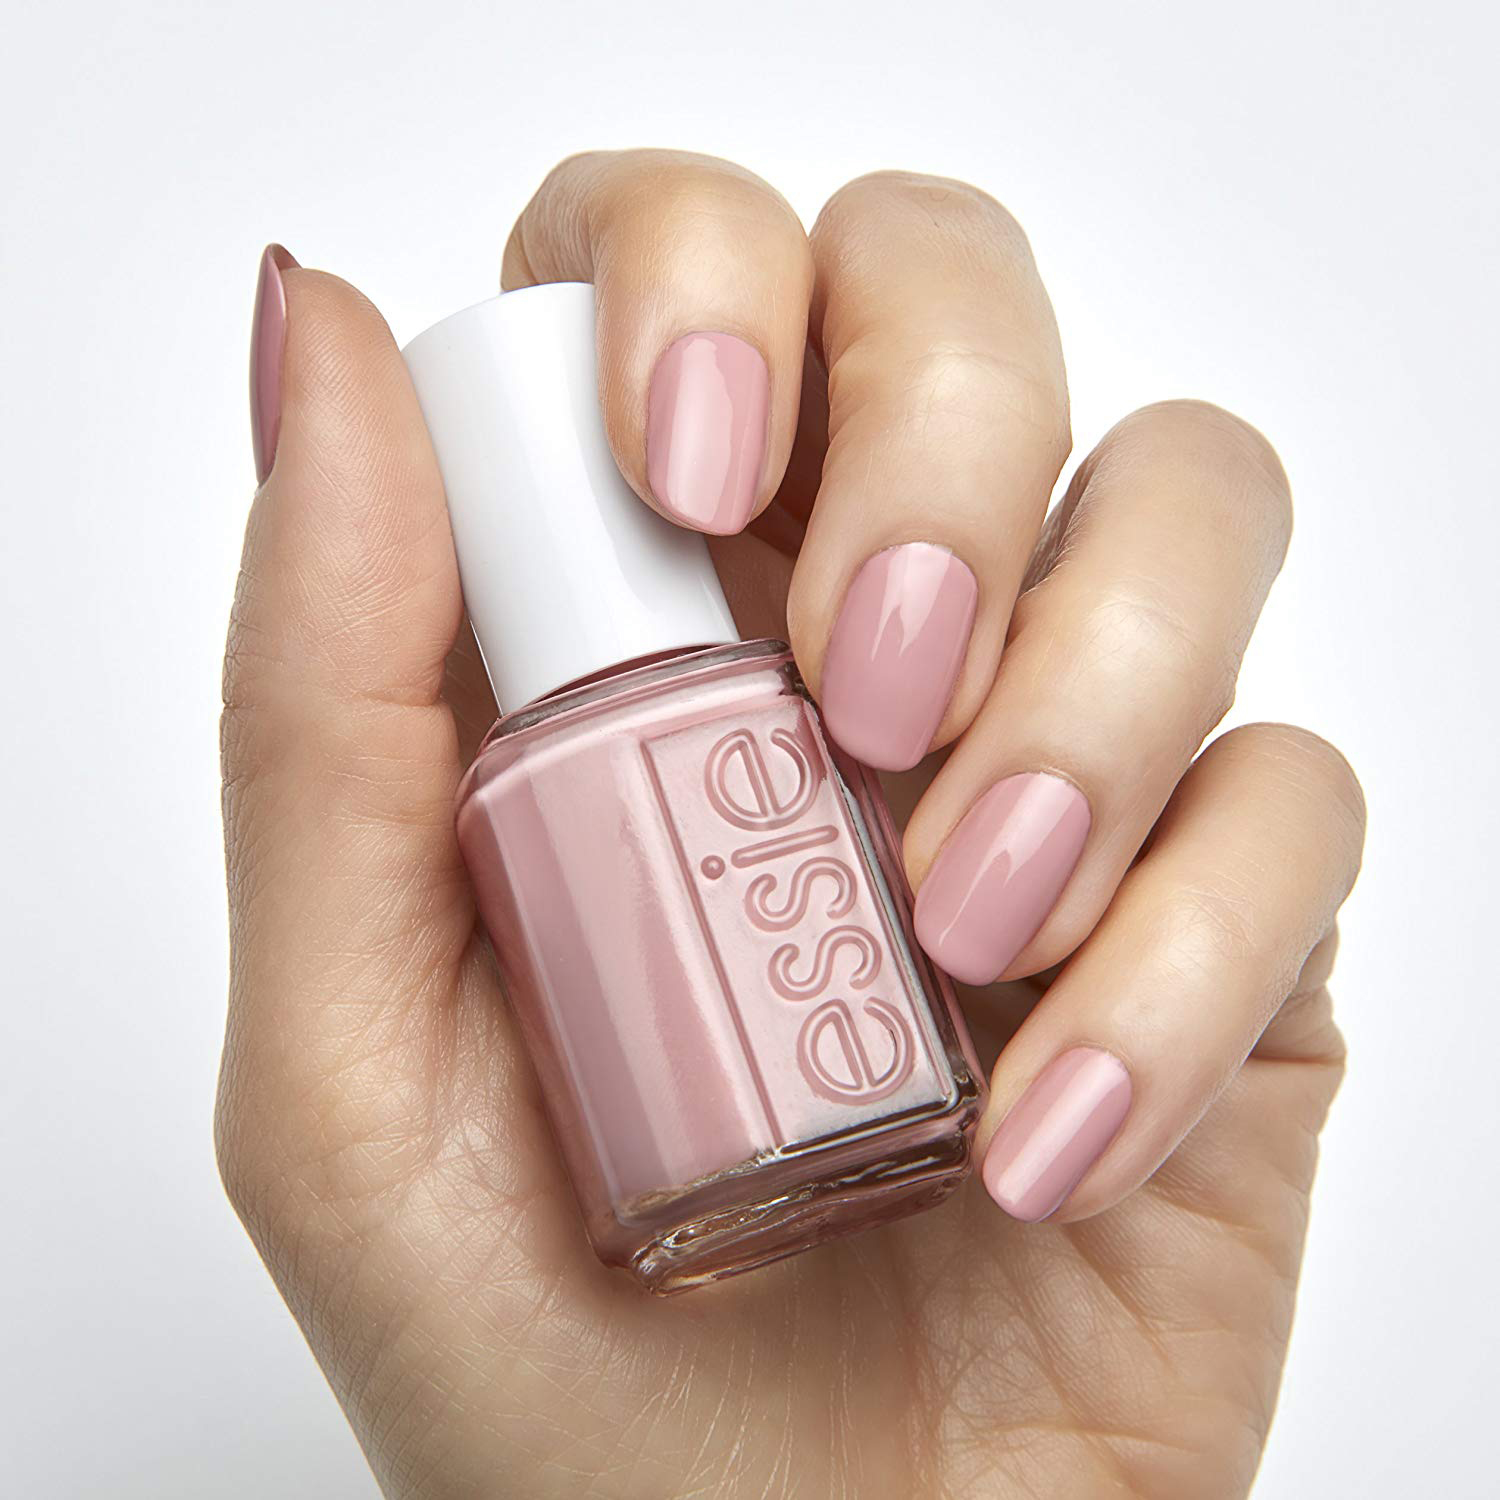 Essie Nail Polish in Young, Wild & Me